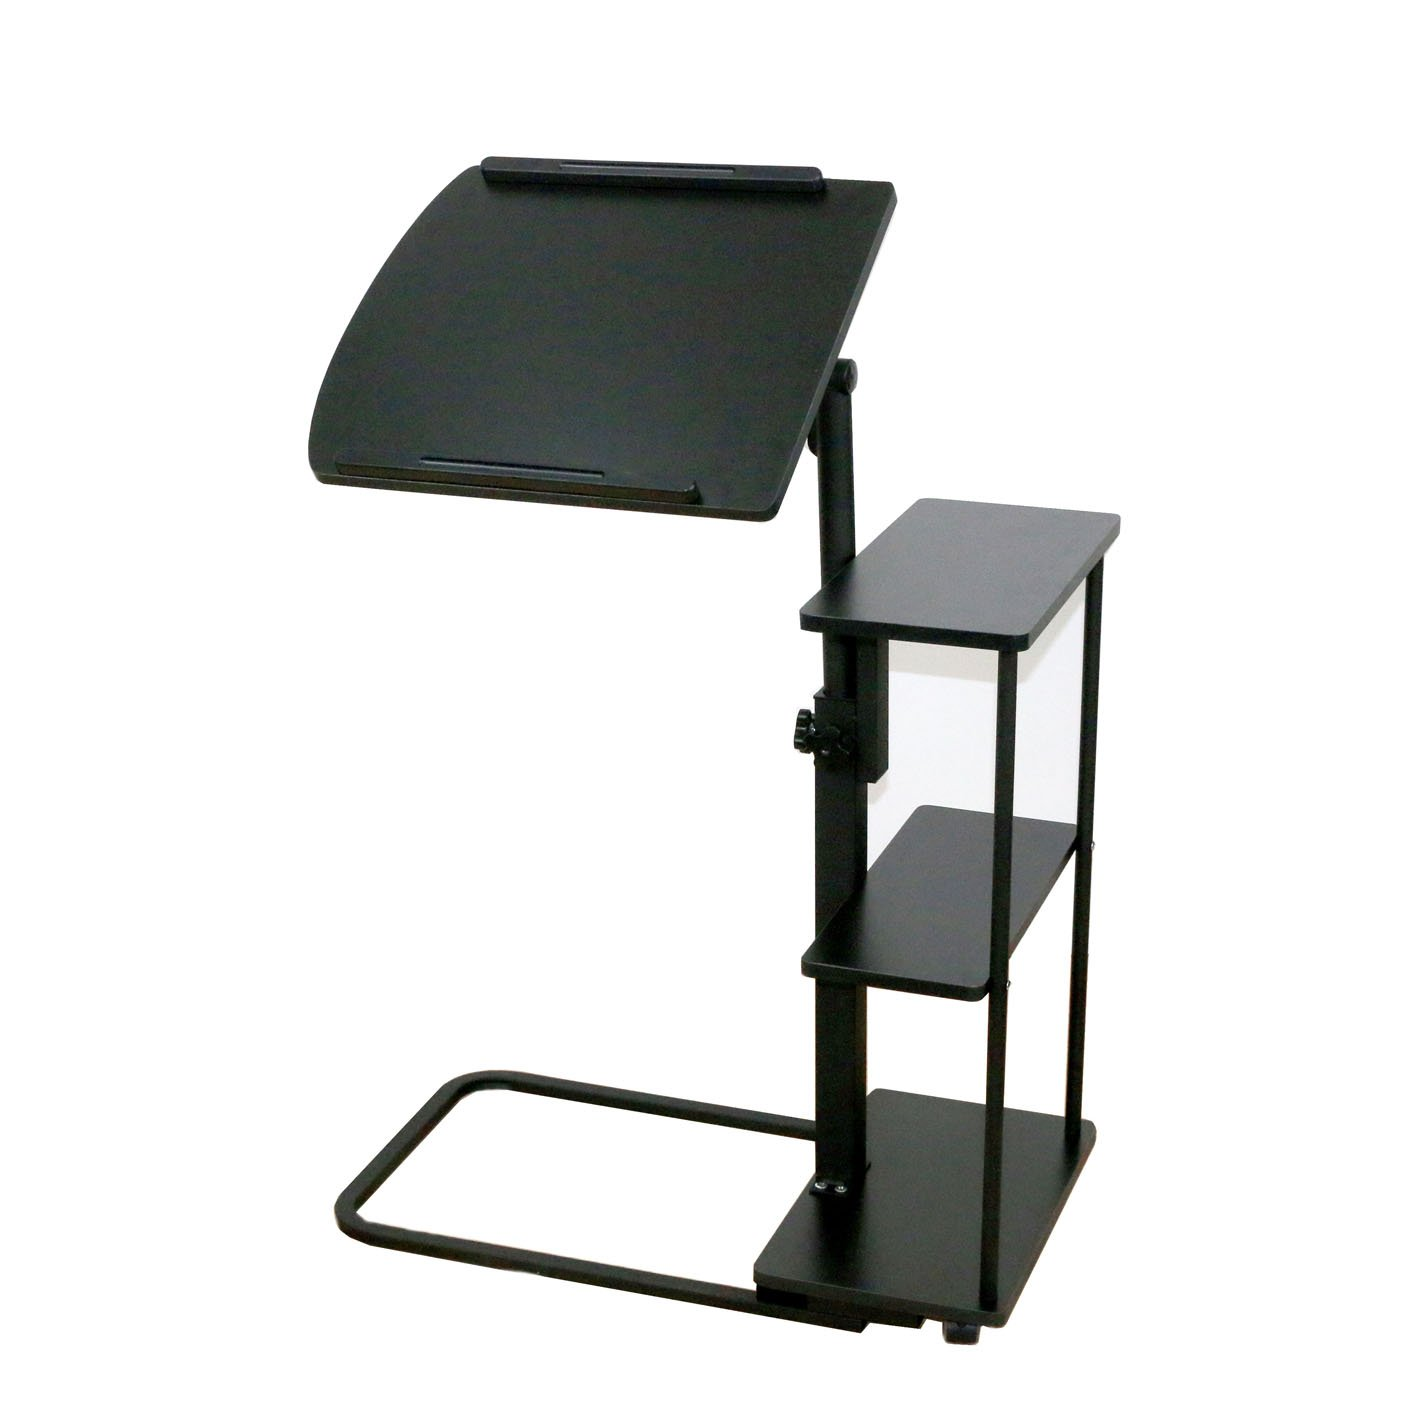 UNICOO - Height Adjustable Overbed Table, Sofa Side Table, Laptop Cart (102-Black)